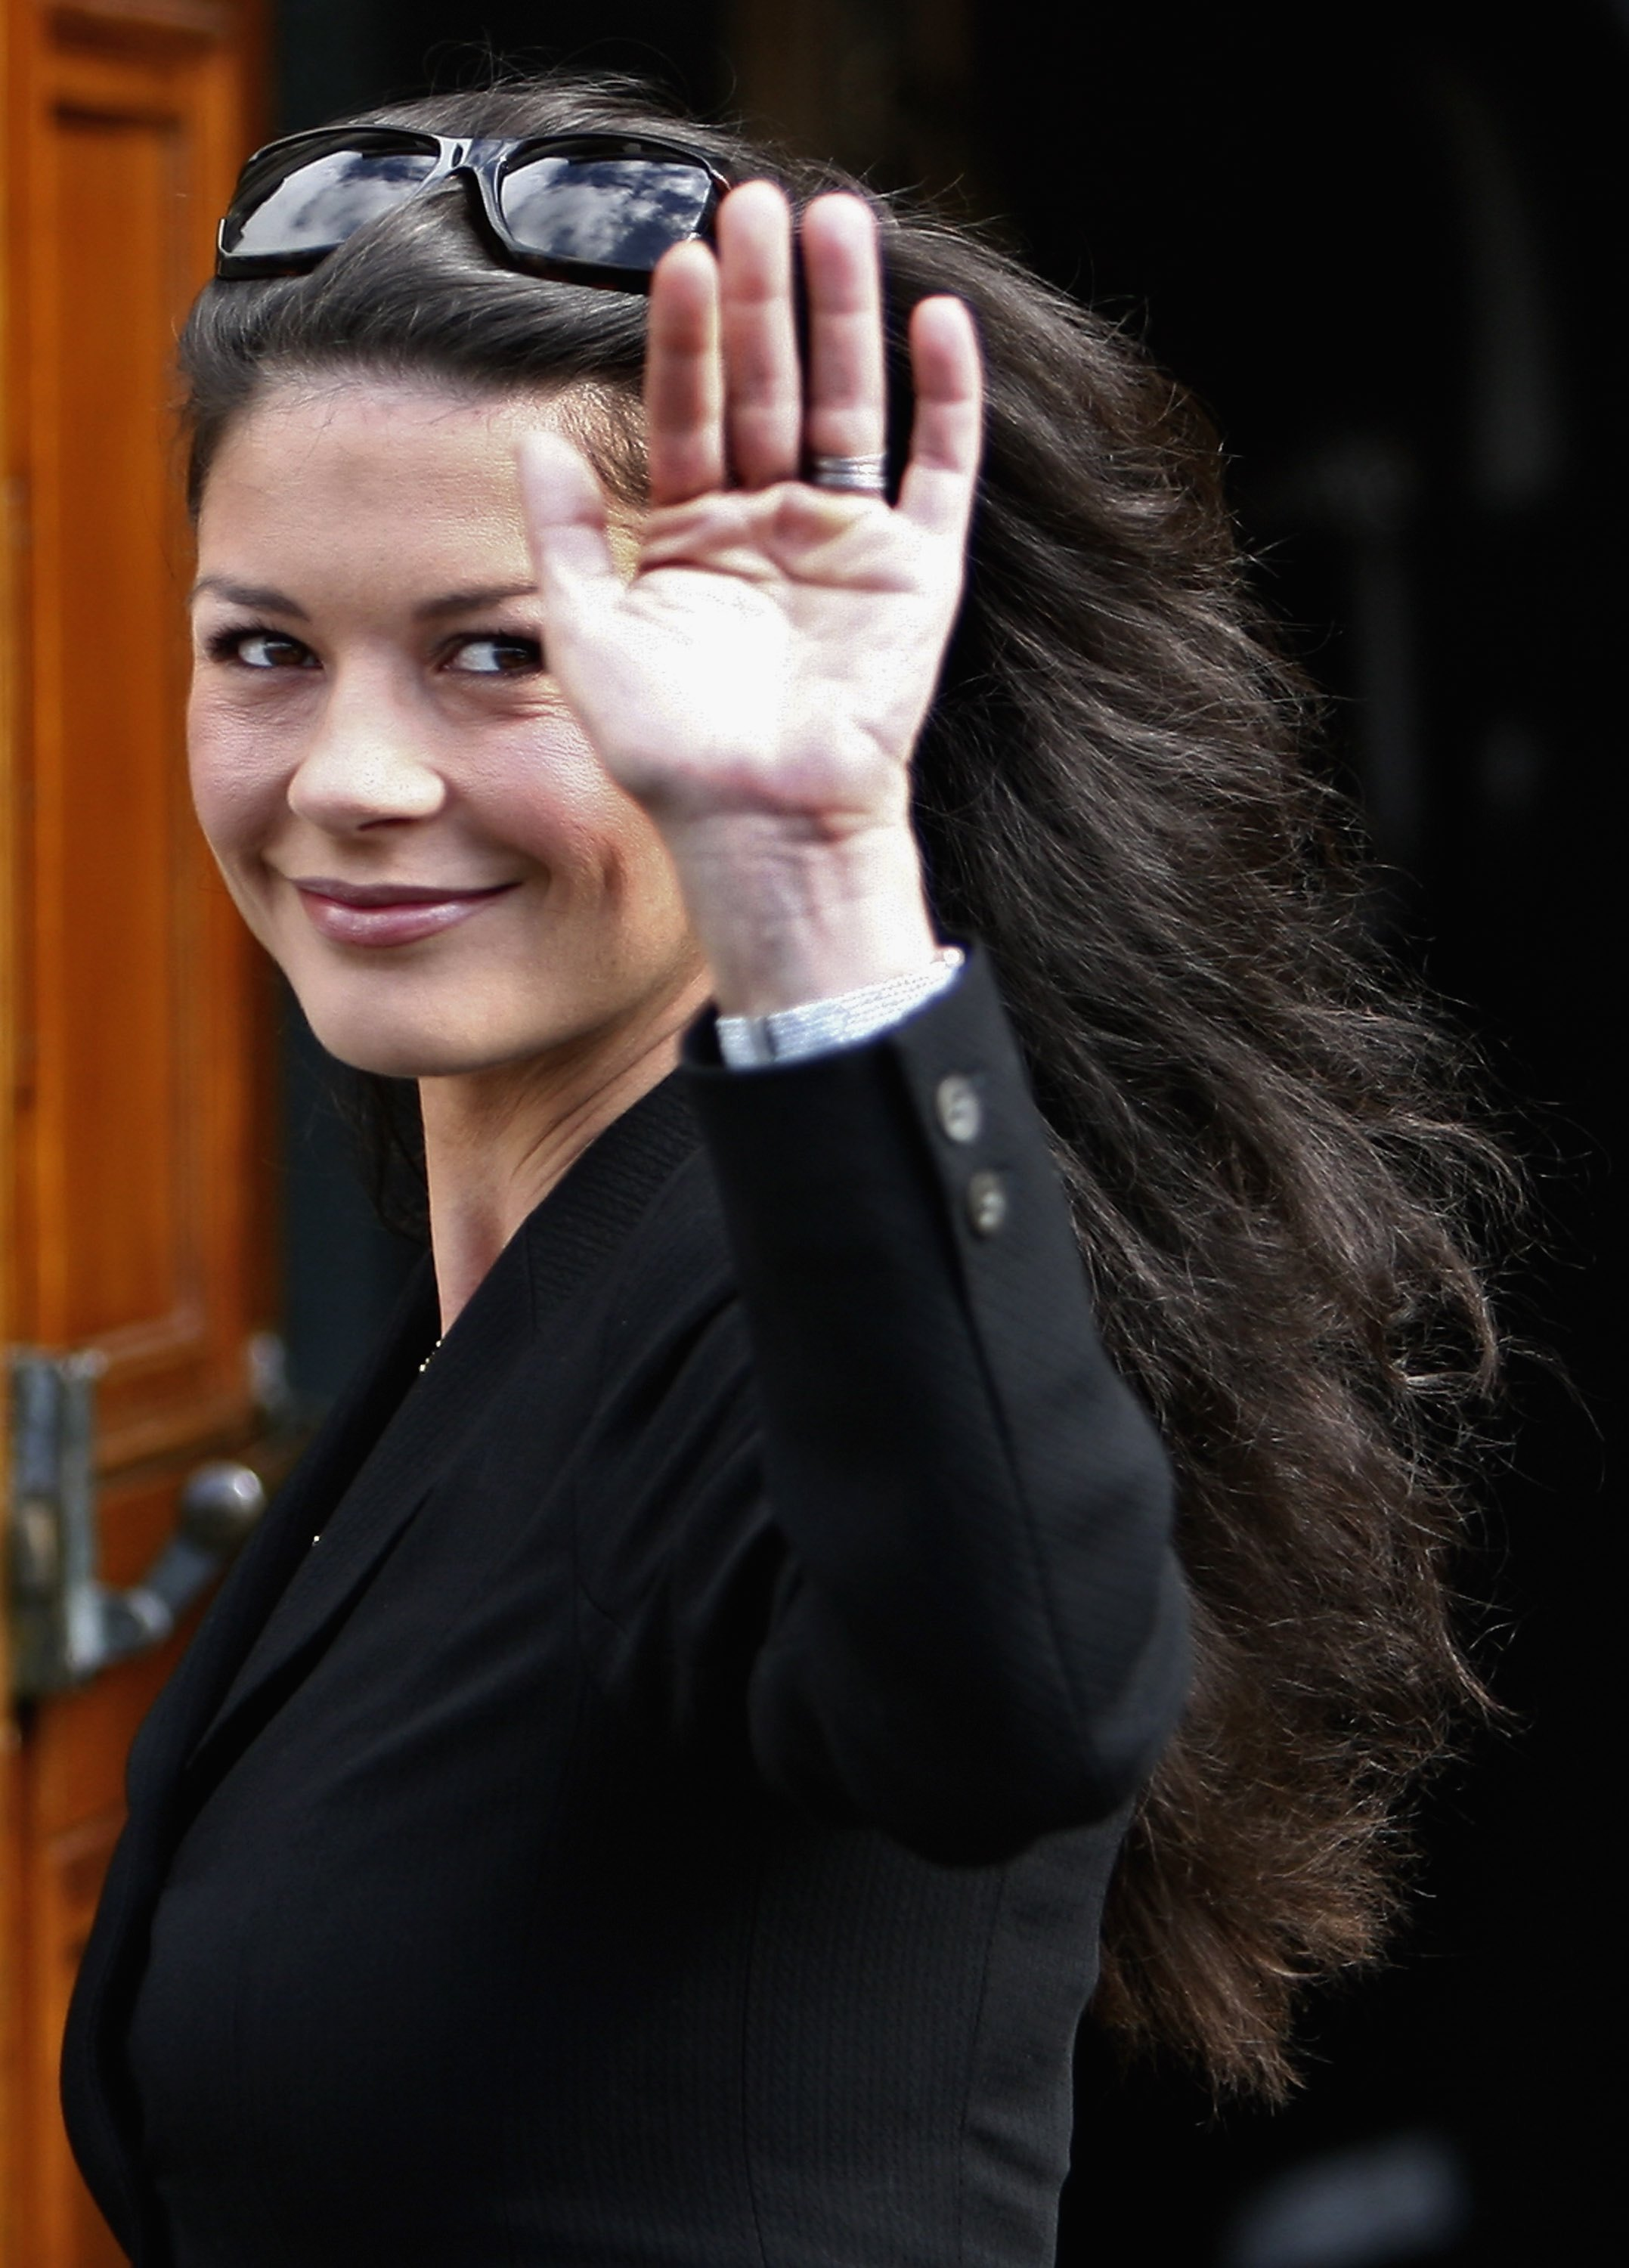 04100_Catherine_Zeta_Jones_Michael_Douglas_Honorary_Degree_Presentation_10